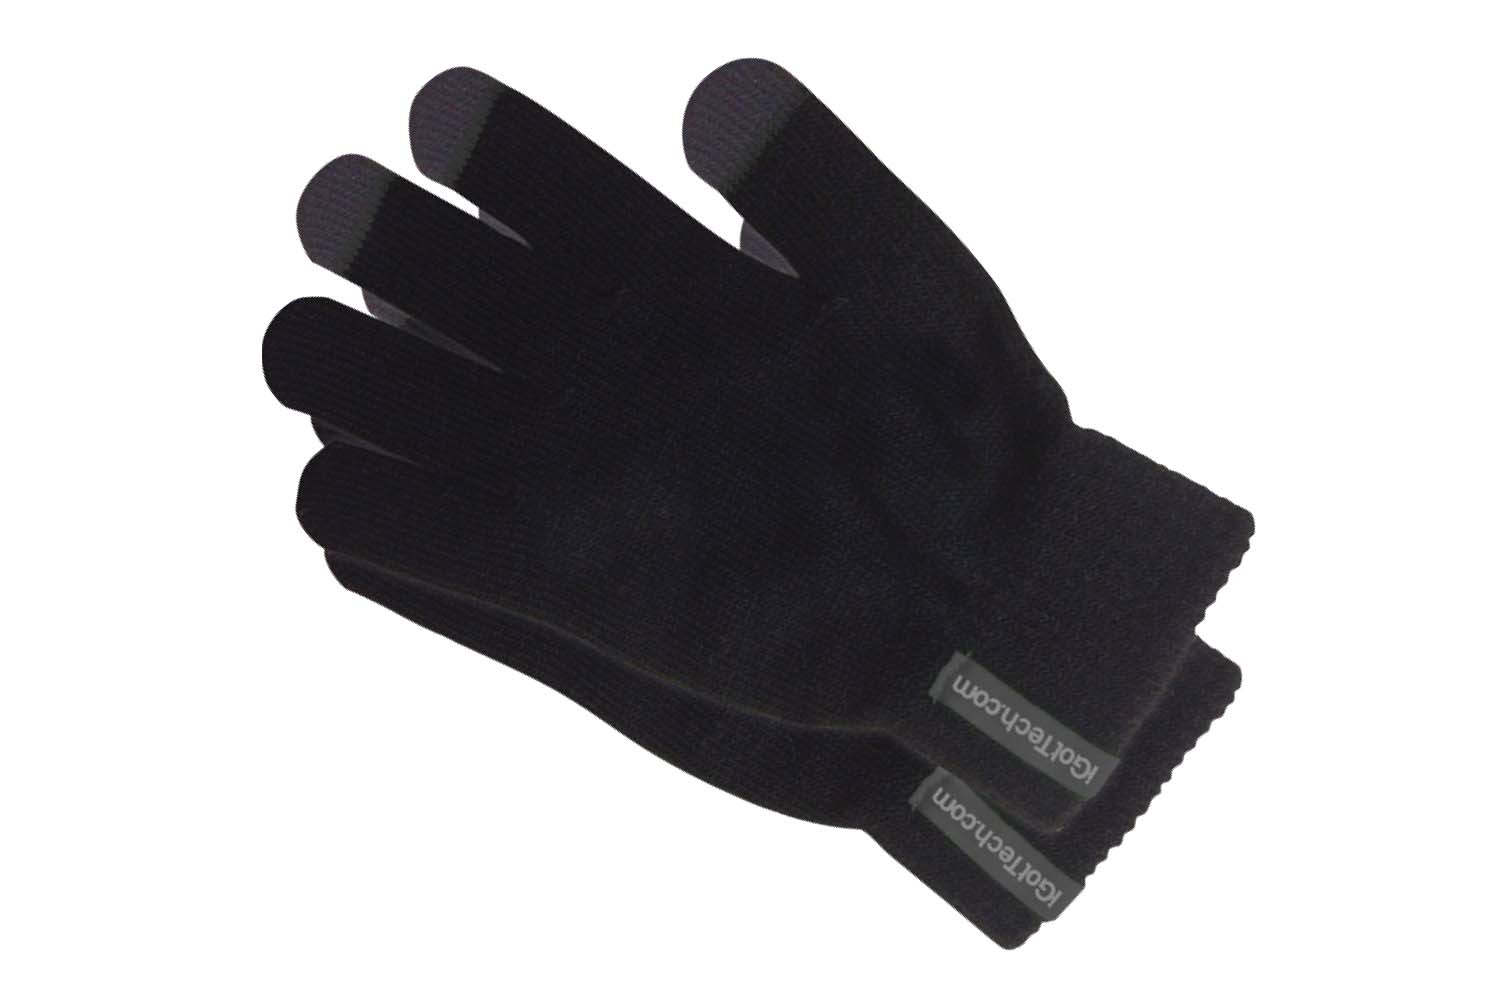 Touch Screen Gloves - 4 stars - $9 (Prime)